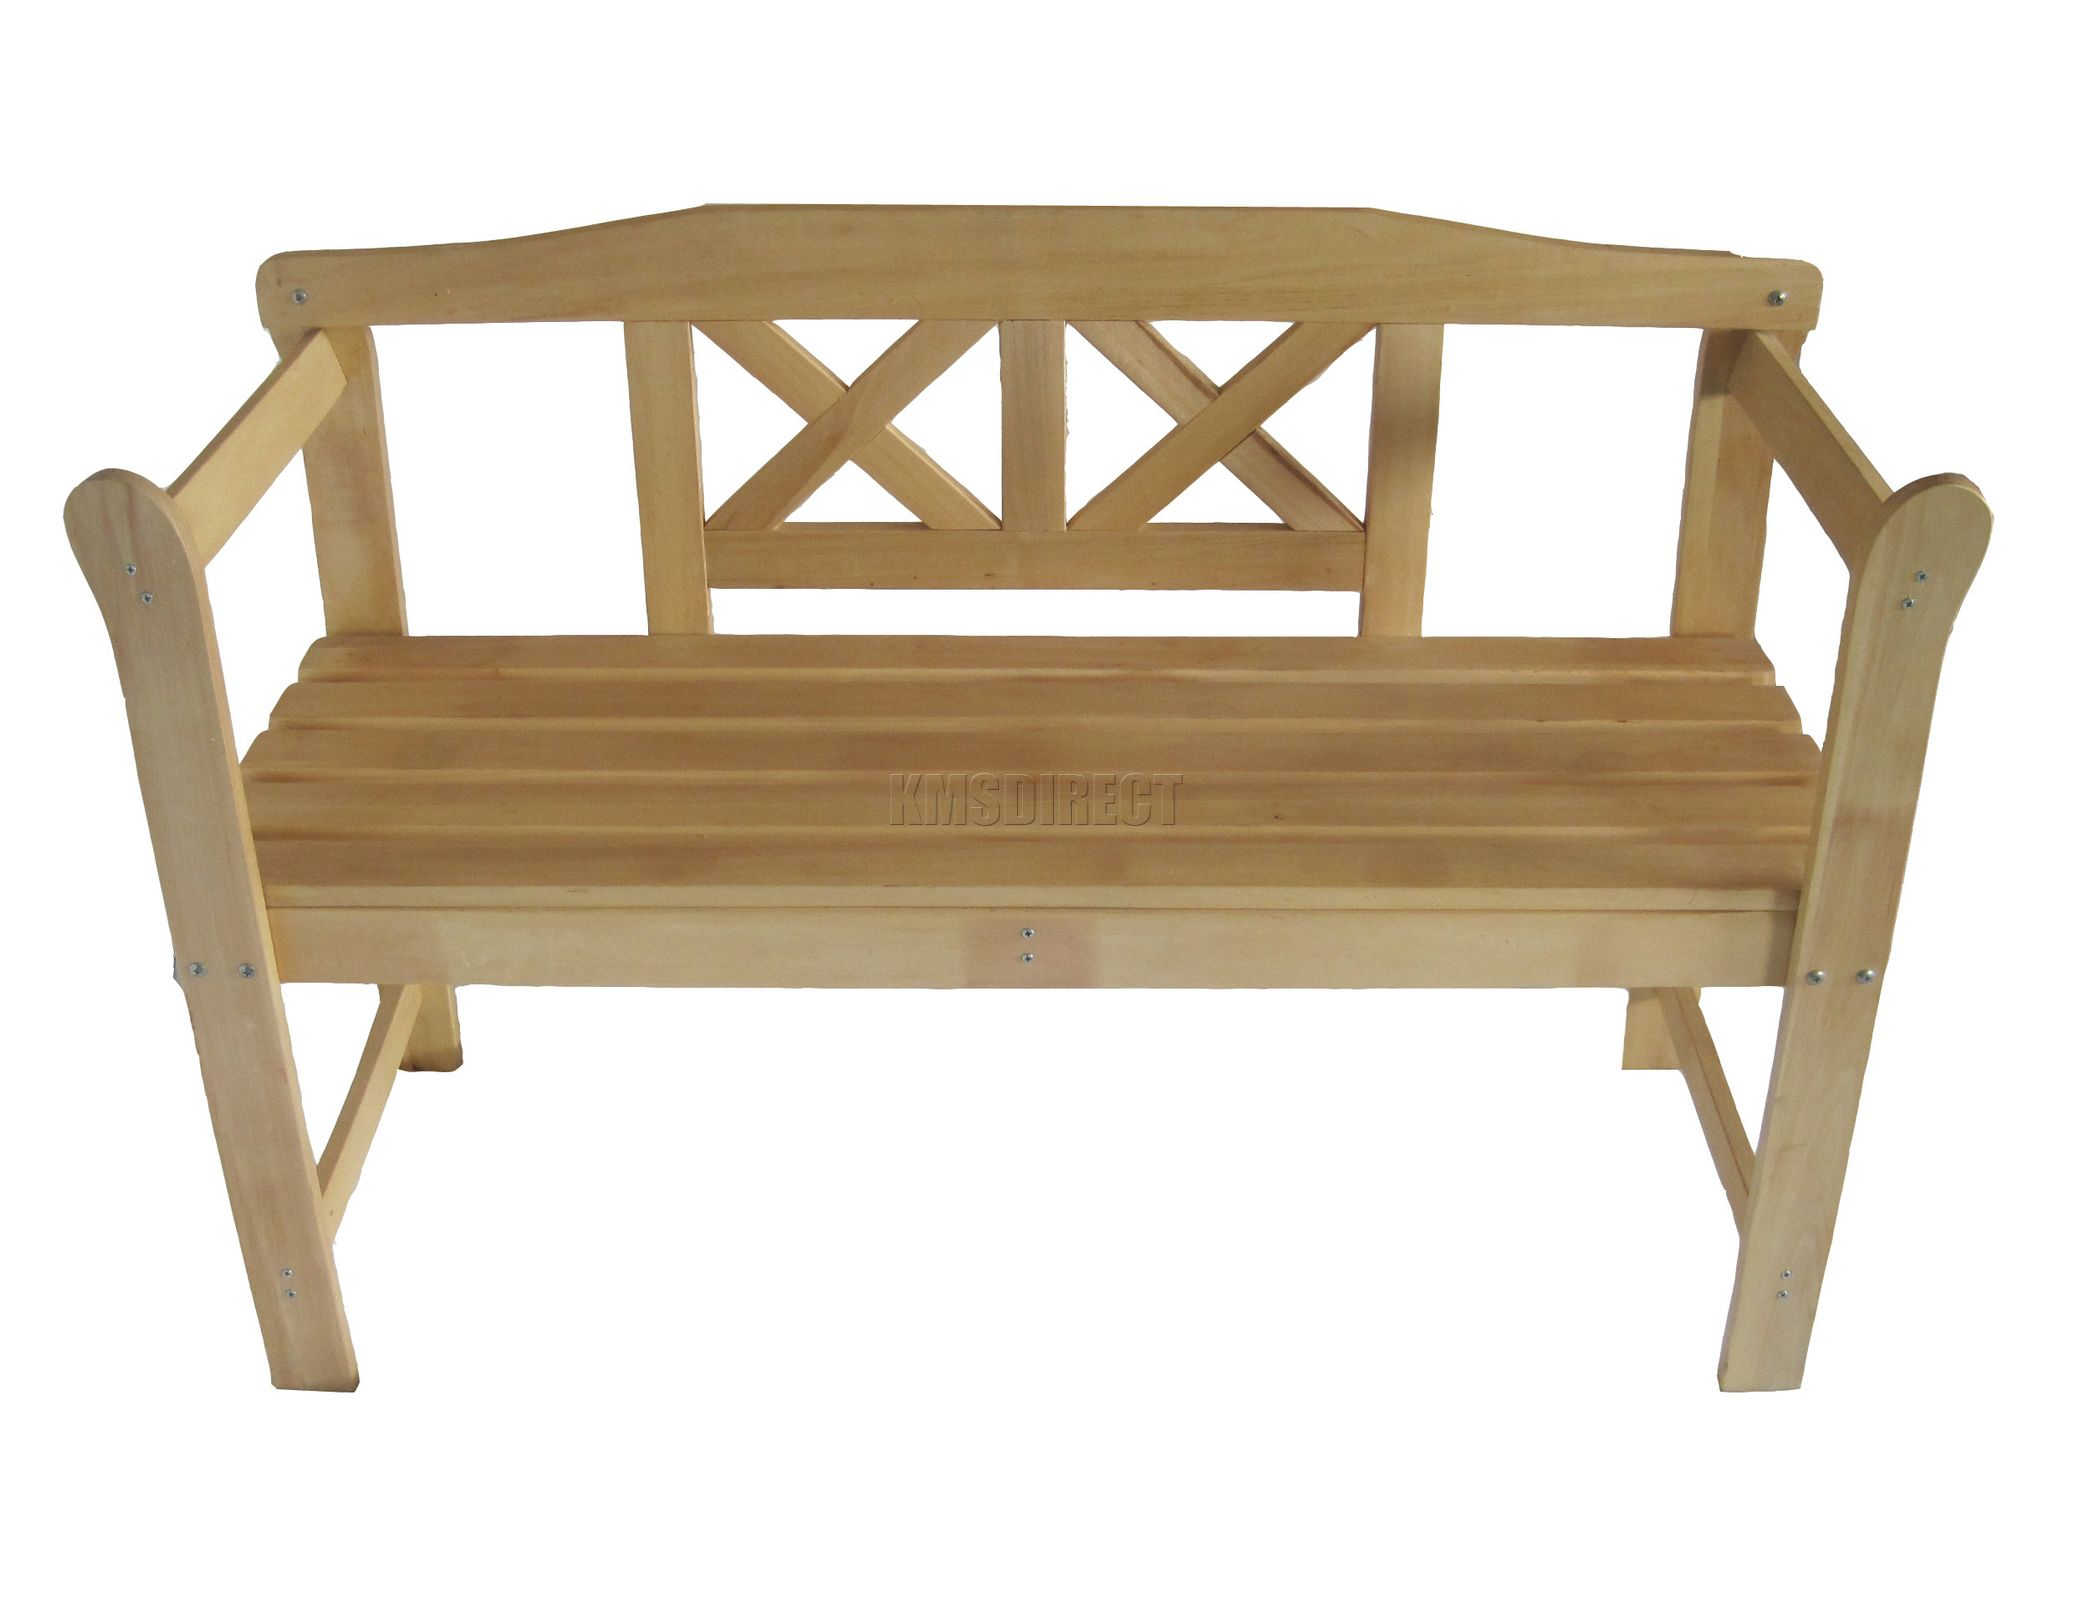 Wooden Seats Outdoor Outdoor Home Wooden 2 Seat